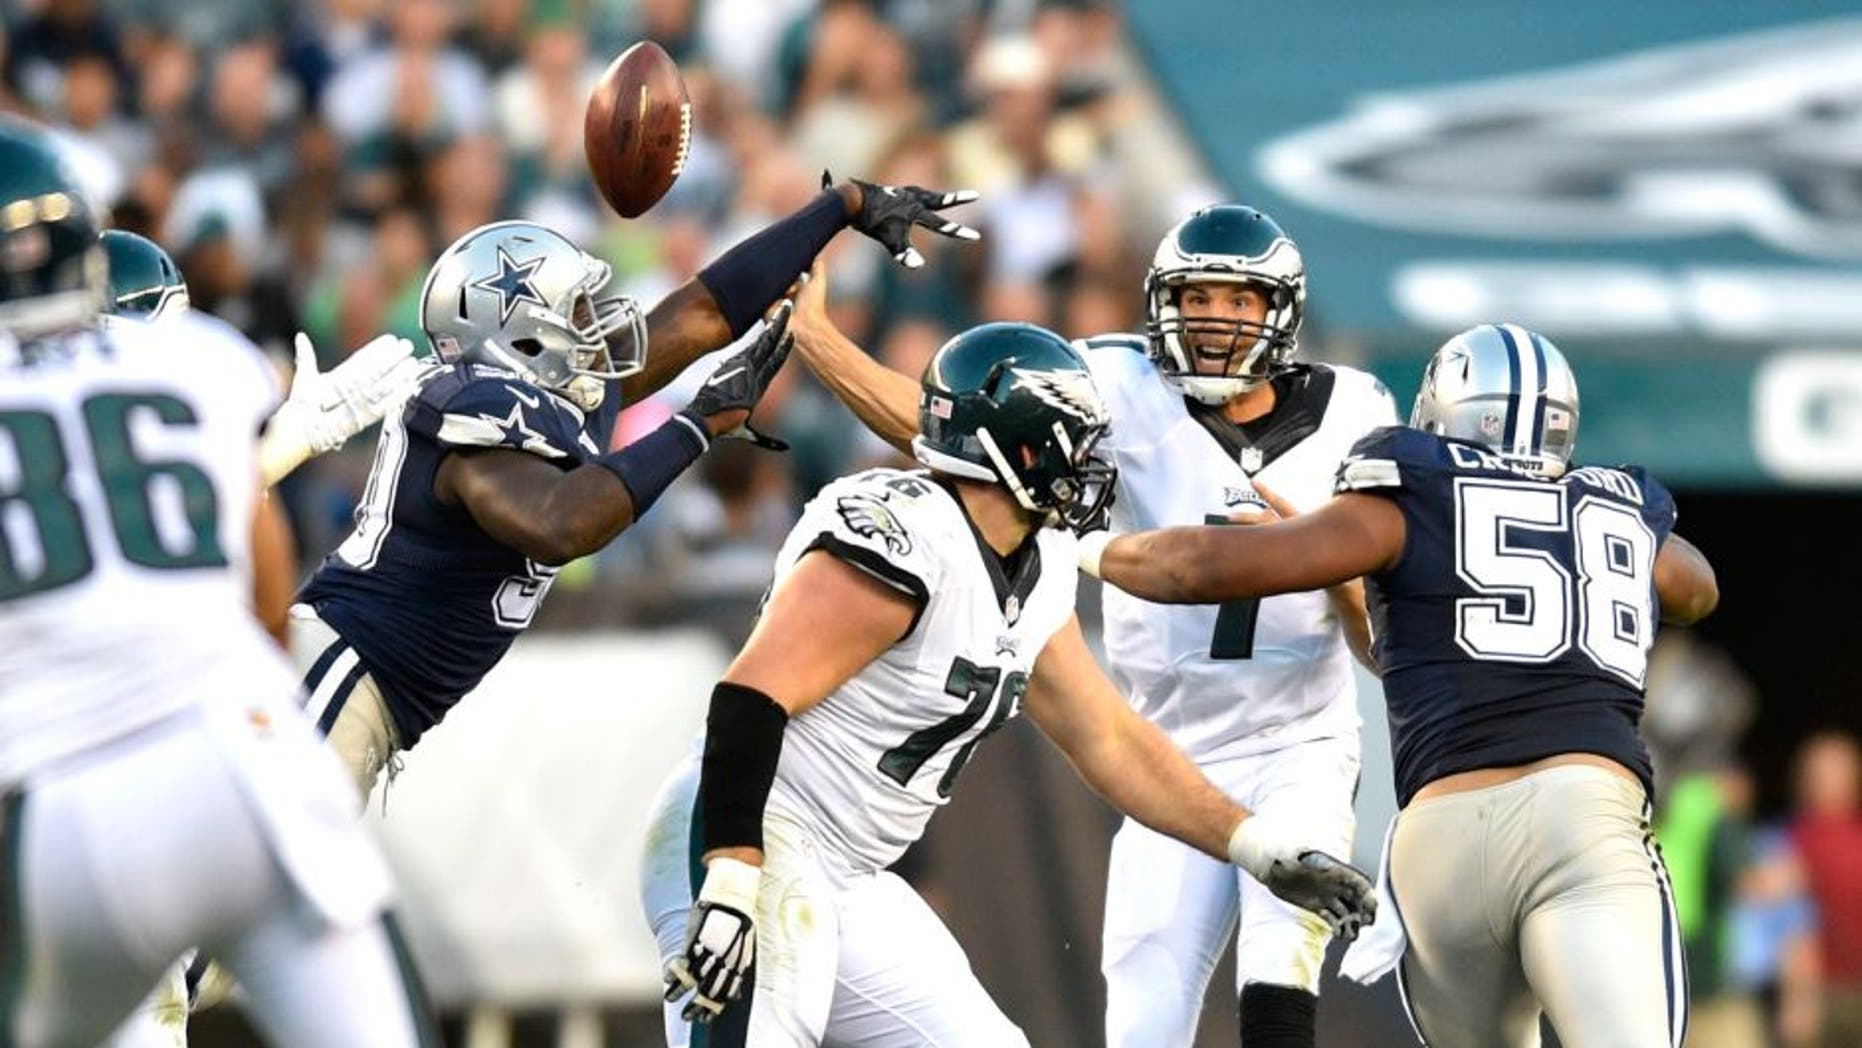 Sep 20, 2015; Philadelphia, PA, USA; Philadelphia Eagles quarterback Sam Bradford (7) has the ball tipped by Dallas Cowboys defensive lineman DeMarcus Lawrence (left) as defensive tackle Jack Crawford (58) defends in the third quarter at Lincoln Financial Field. Mandatory Credit: James Lang-USA TODAY Sports